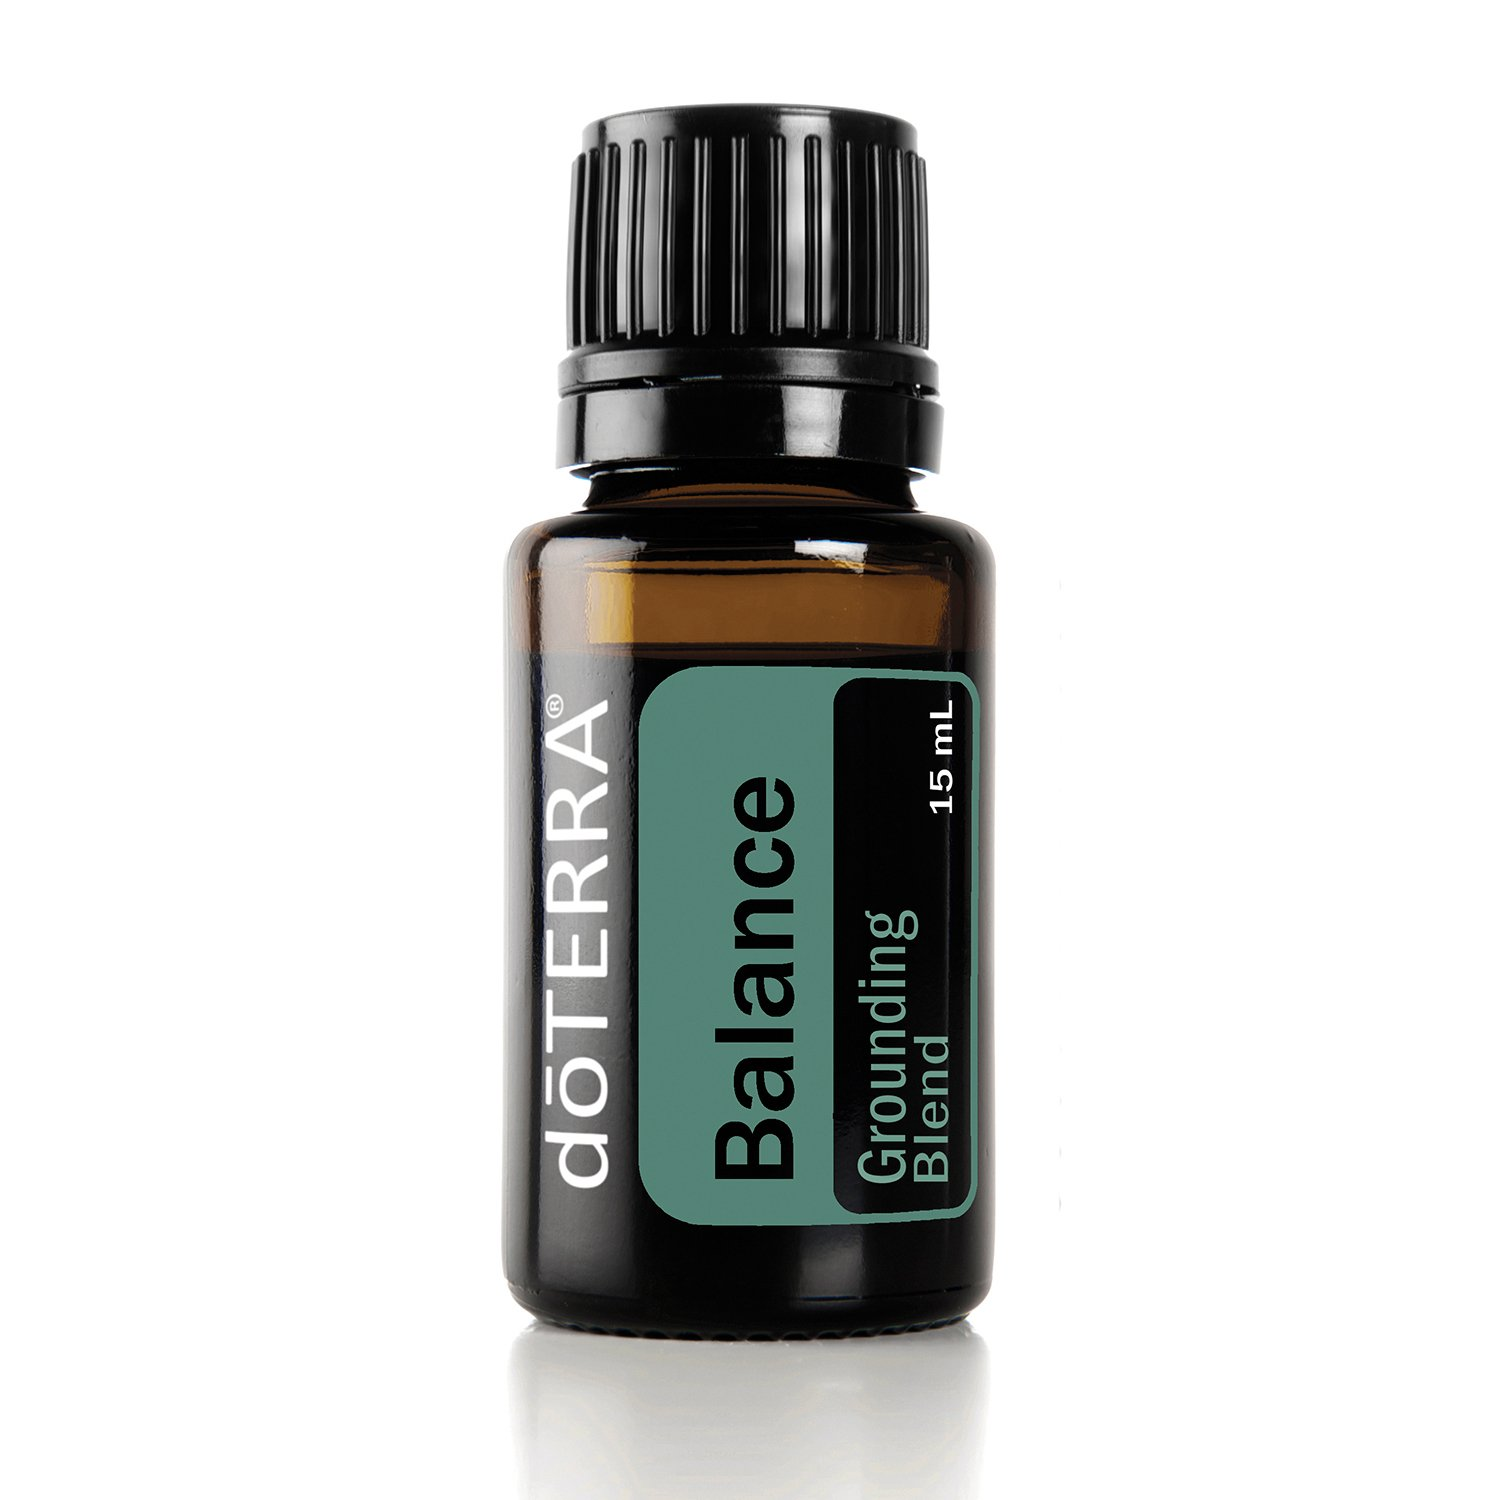 doTERRA - Balance Essential Oil Grounding Blend - Promotes Relaxation, Tranquility and Balance, May Help Ease Anxious Feelings; for Diffusion or Topical Use - 15 mL by DoTerra